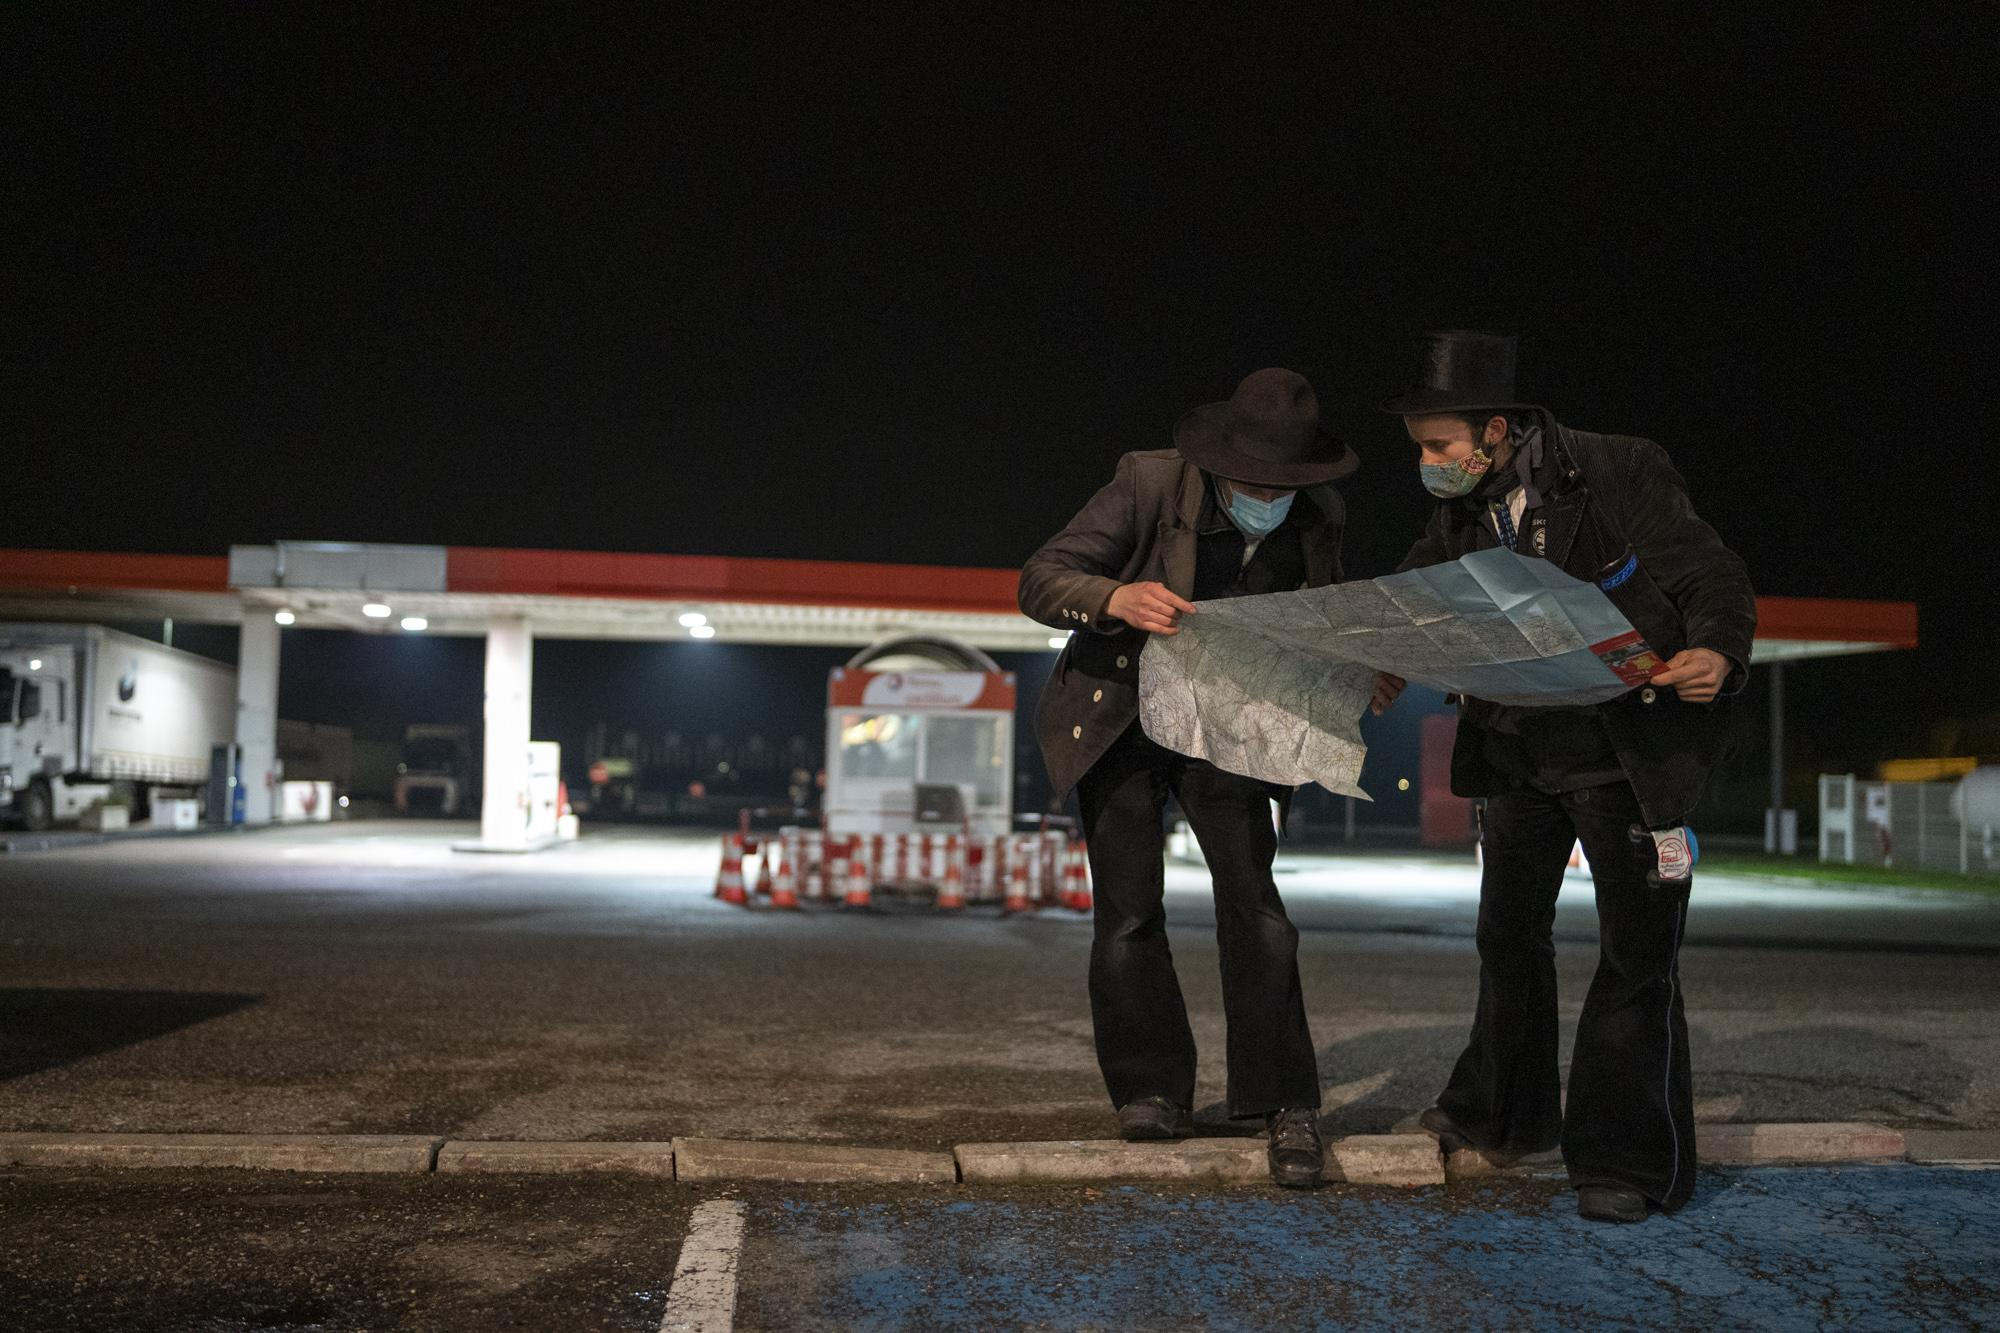 Ben (L) and Matthias check the map of France at the empty service Aire de la Porte d'Alsace on the A36 after Mulhouse, France, in the late afternoon of December 2, 2020. They reunited there after getting on different lifts near Strasbourg.